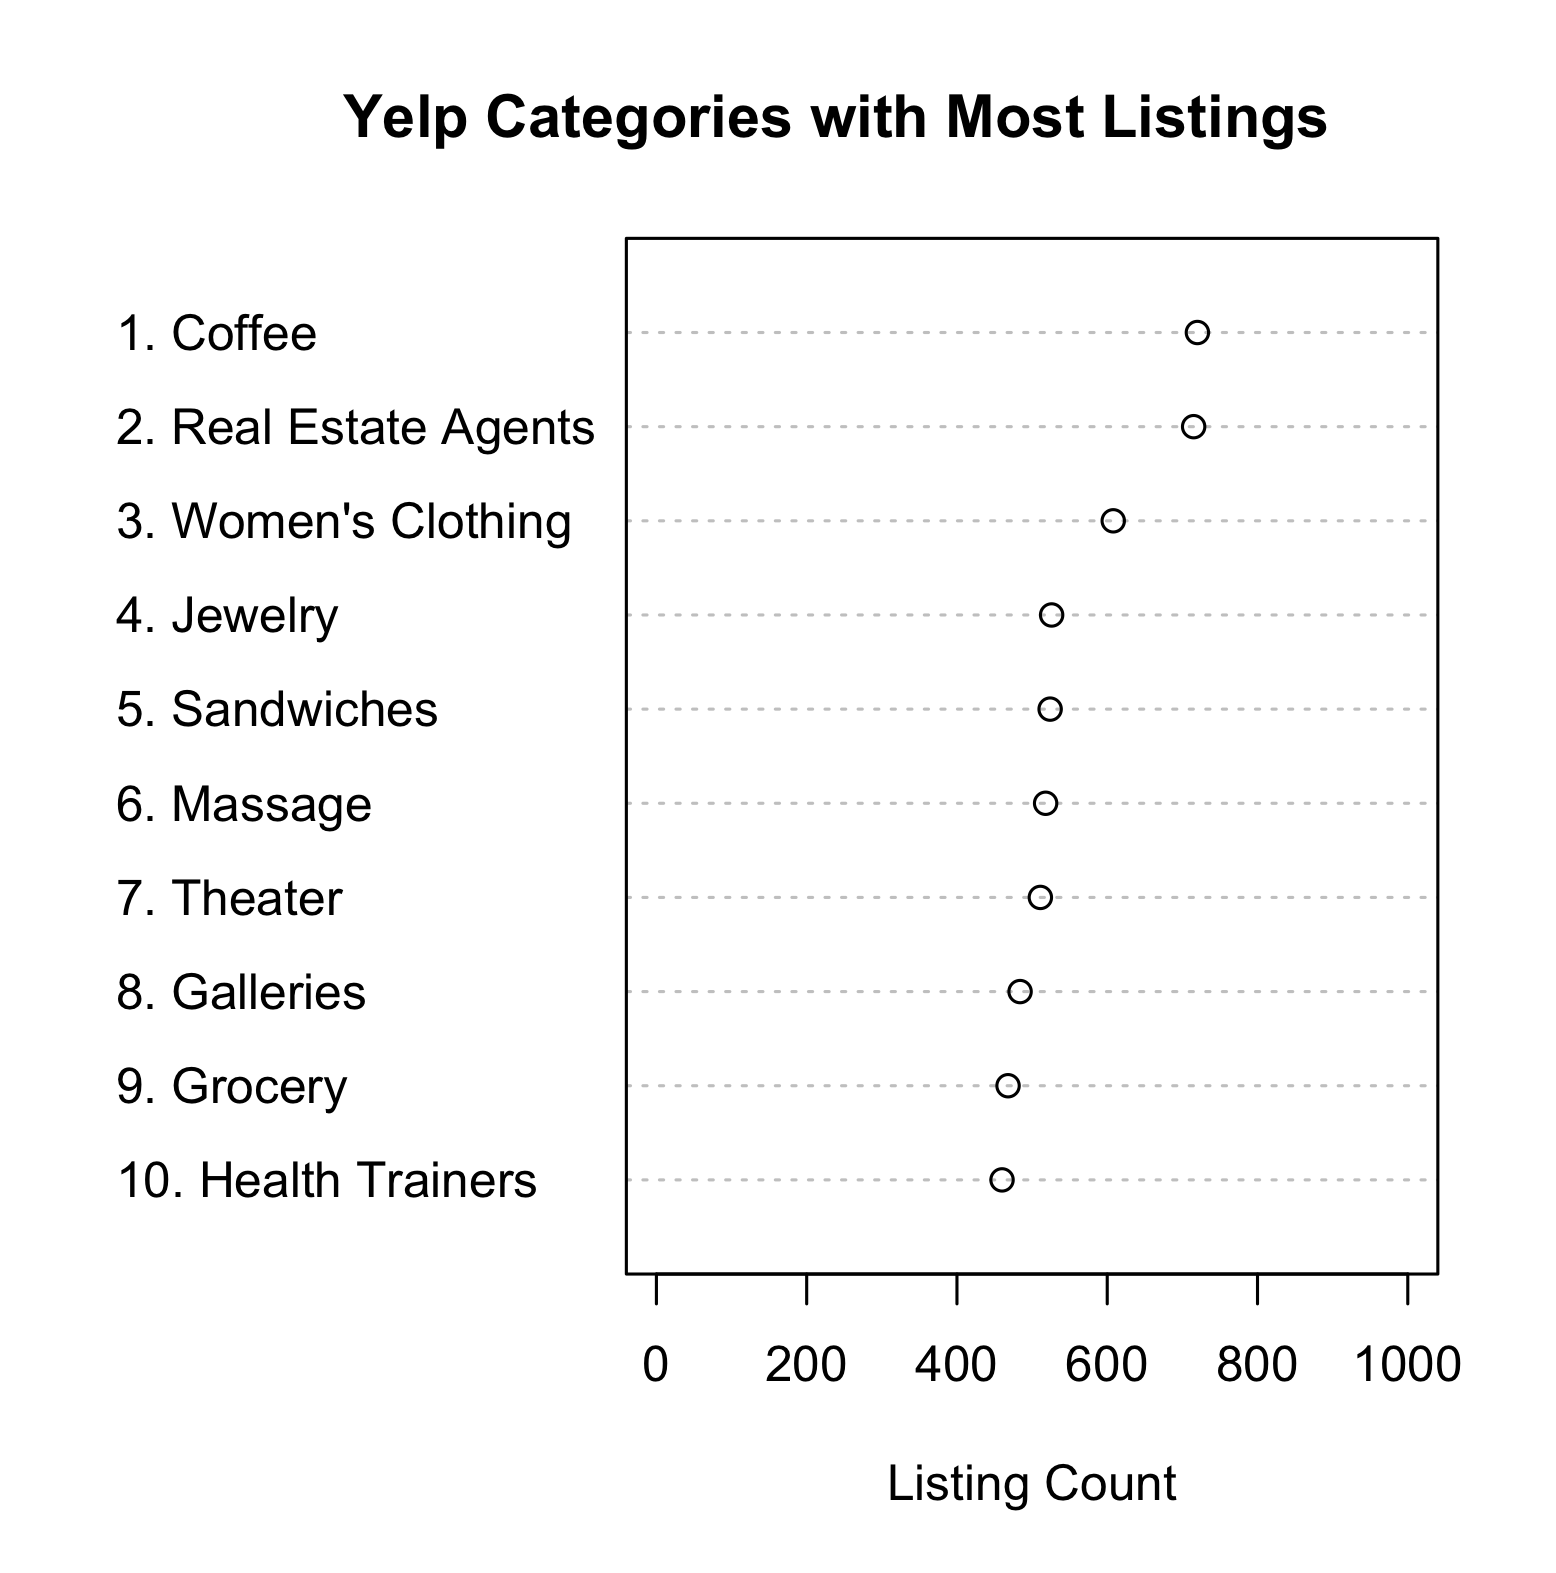 Yelp Categories with Most Listings